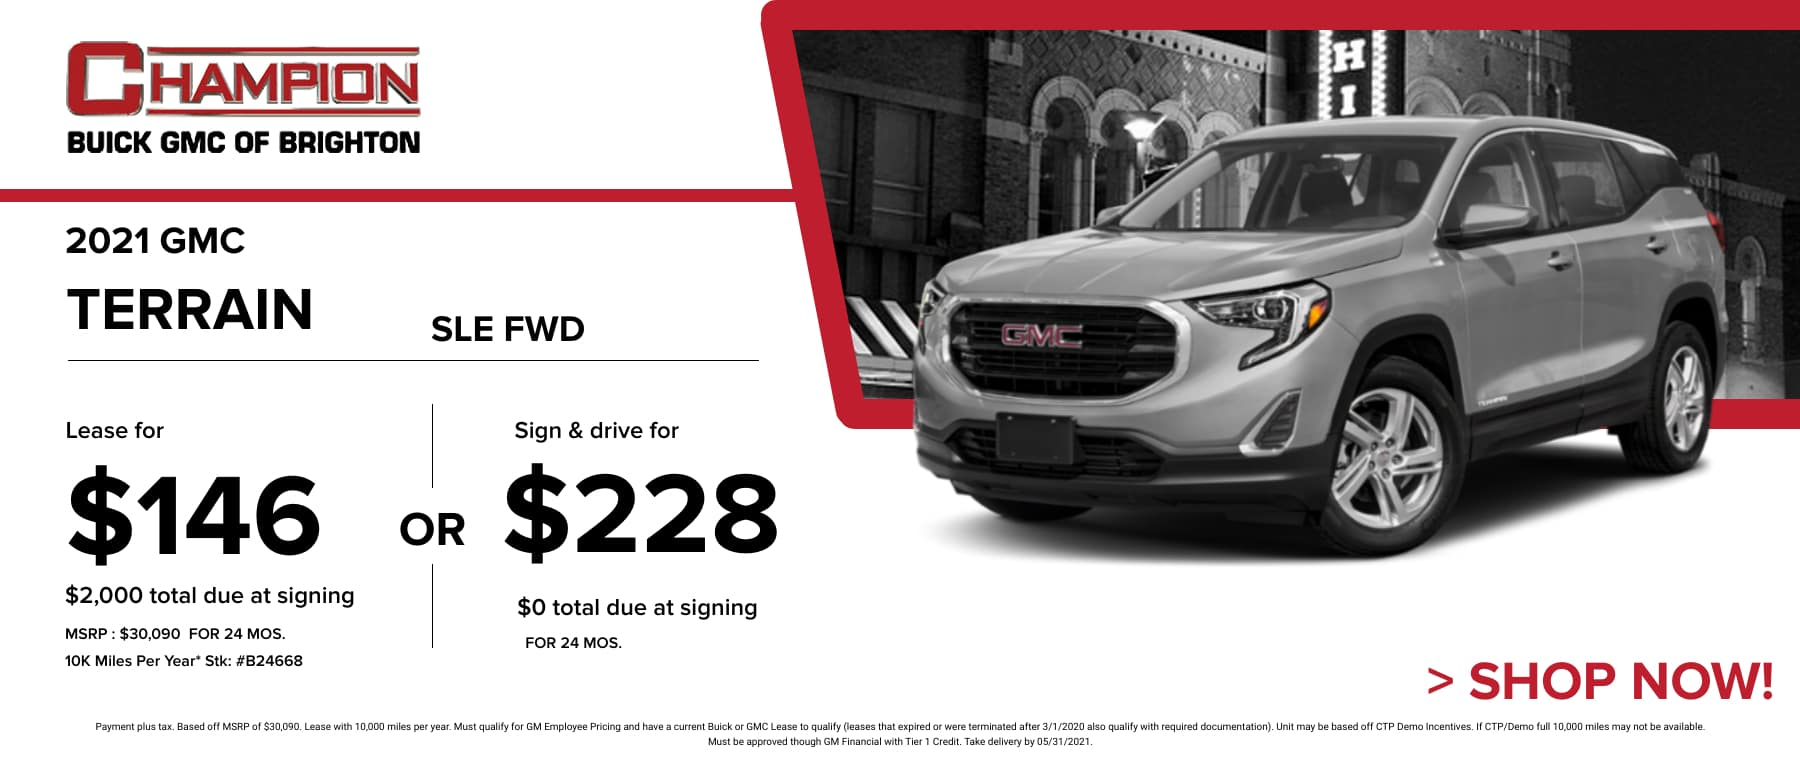 2021 GMC Terrain SLE FWD - Lease for just: $146 per month for 24 months $2,000 total due at signing. Sign & Drive for $228 per month for 24 months. *Stock #B24668. MSRP: $30,090